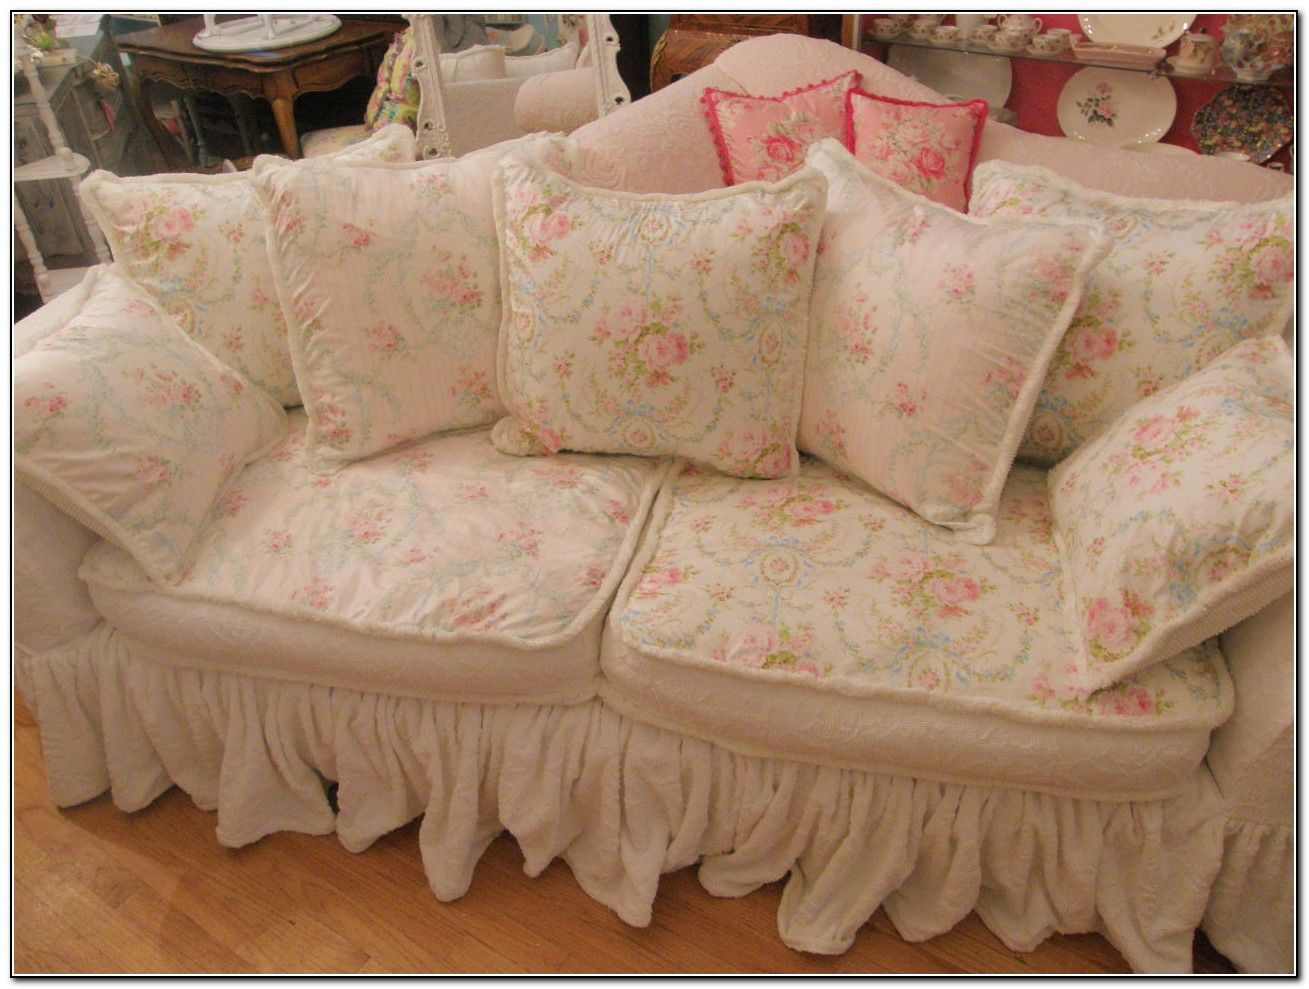 shabby chic sofa covers lady lilac pinterest shabby chic sofa rh pinterest com au shabby chic sofa covers shabby chic couch covers